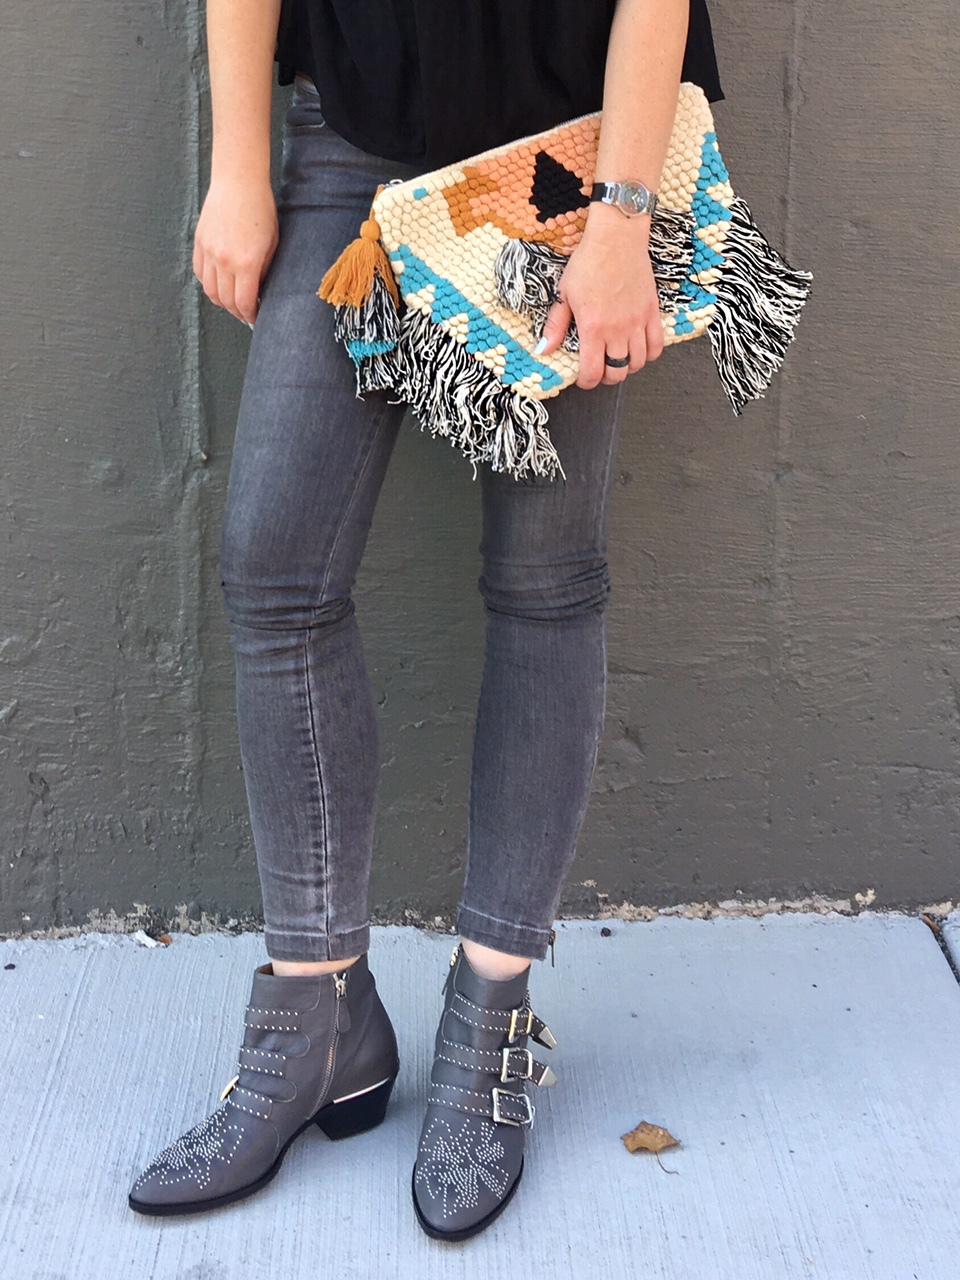 Black lace top and ethnic clutch